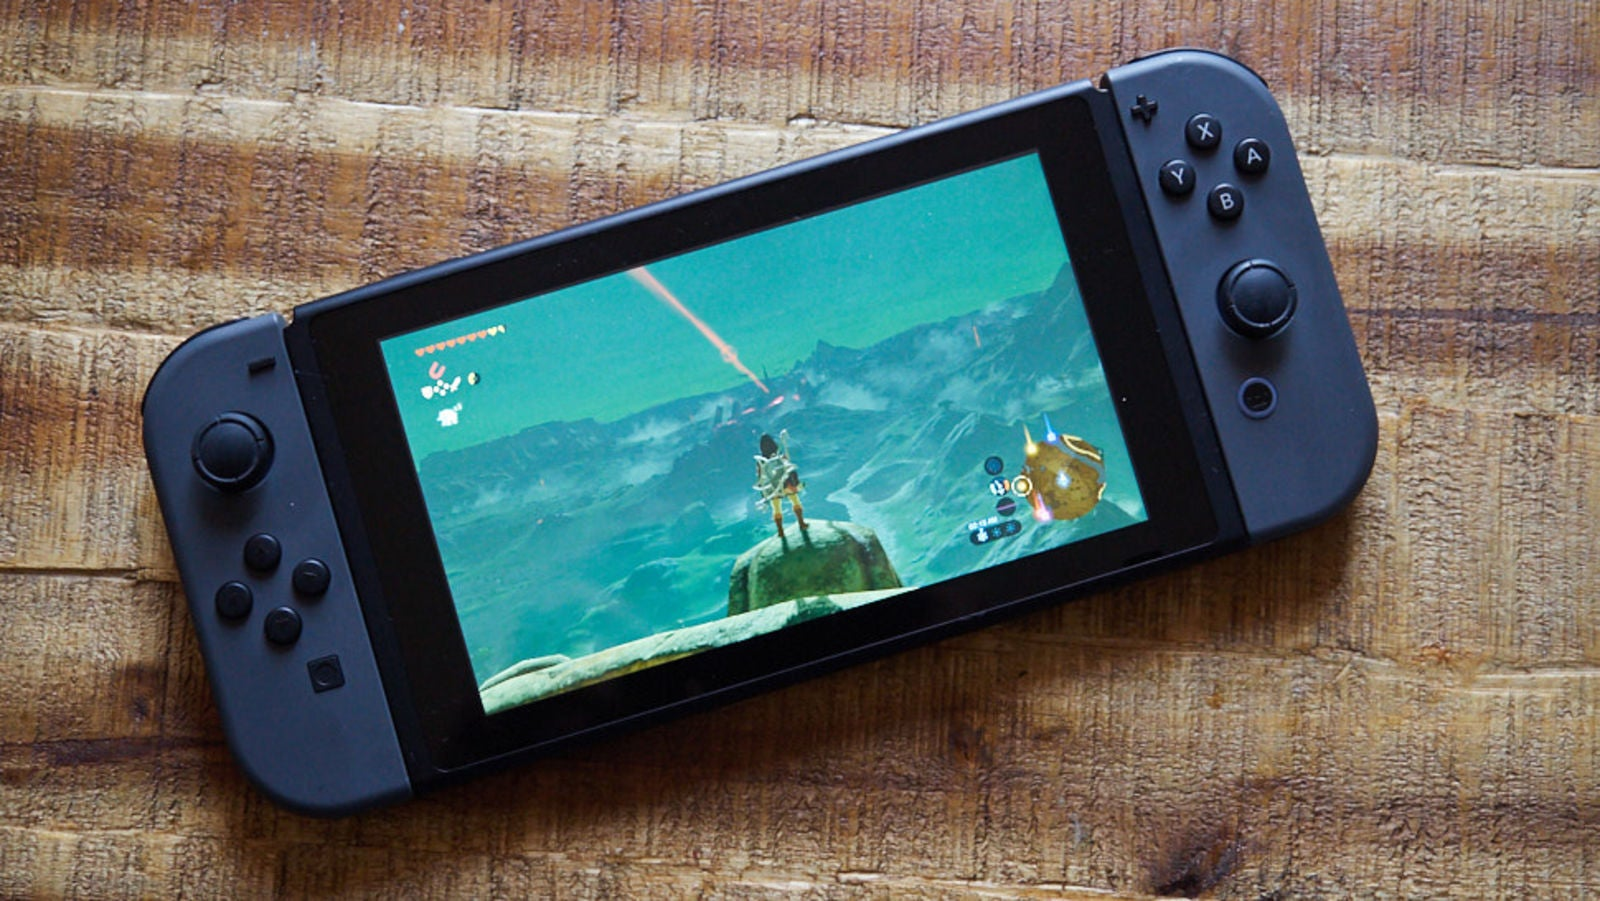 'Unpatchable Exploit' On Nintendo Switch Opens The Door To Jailbreaks